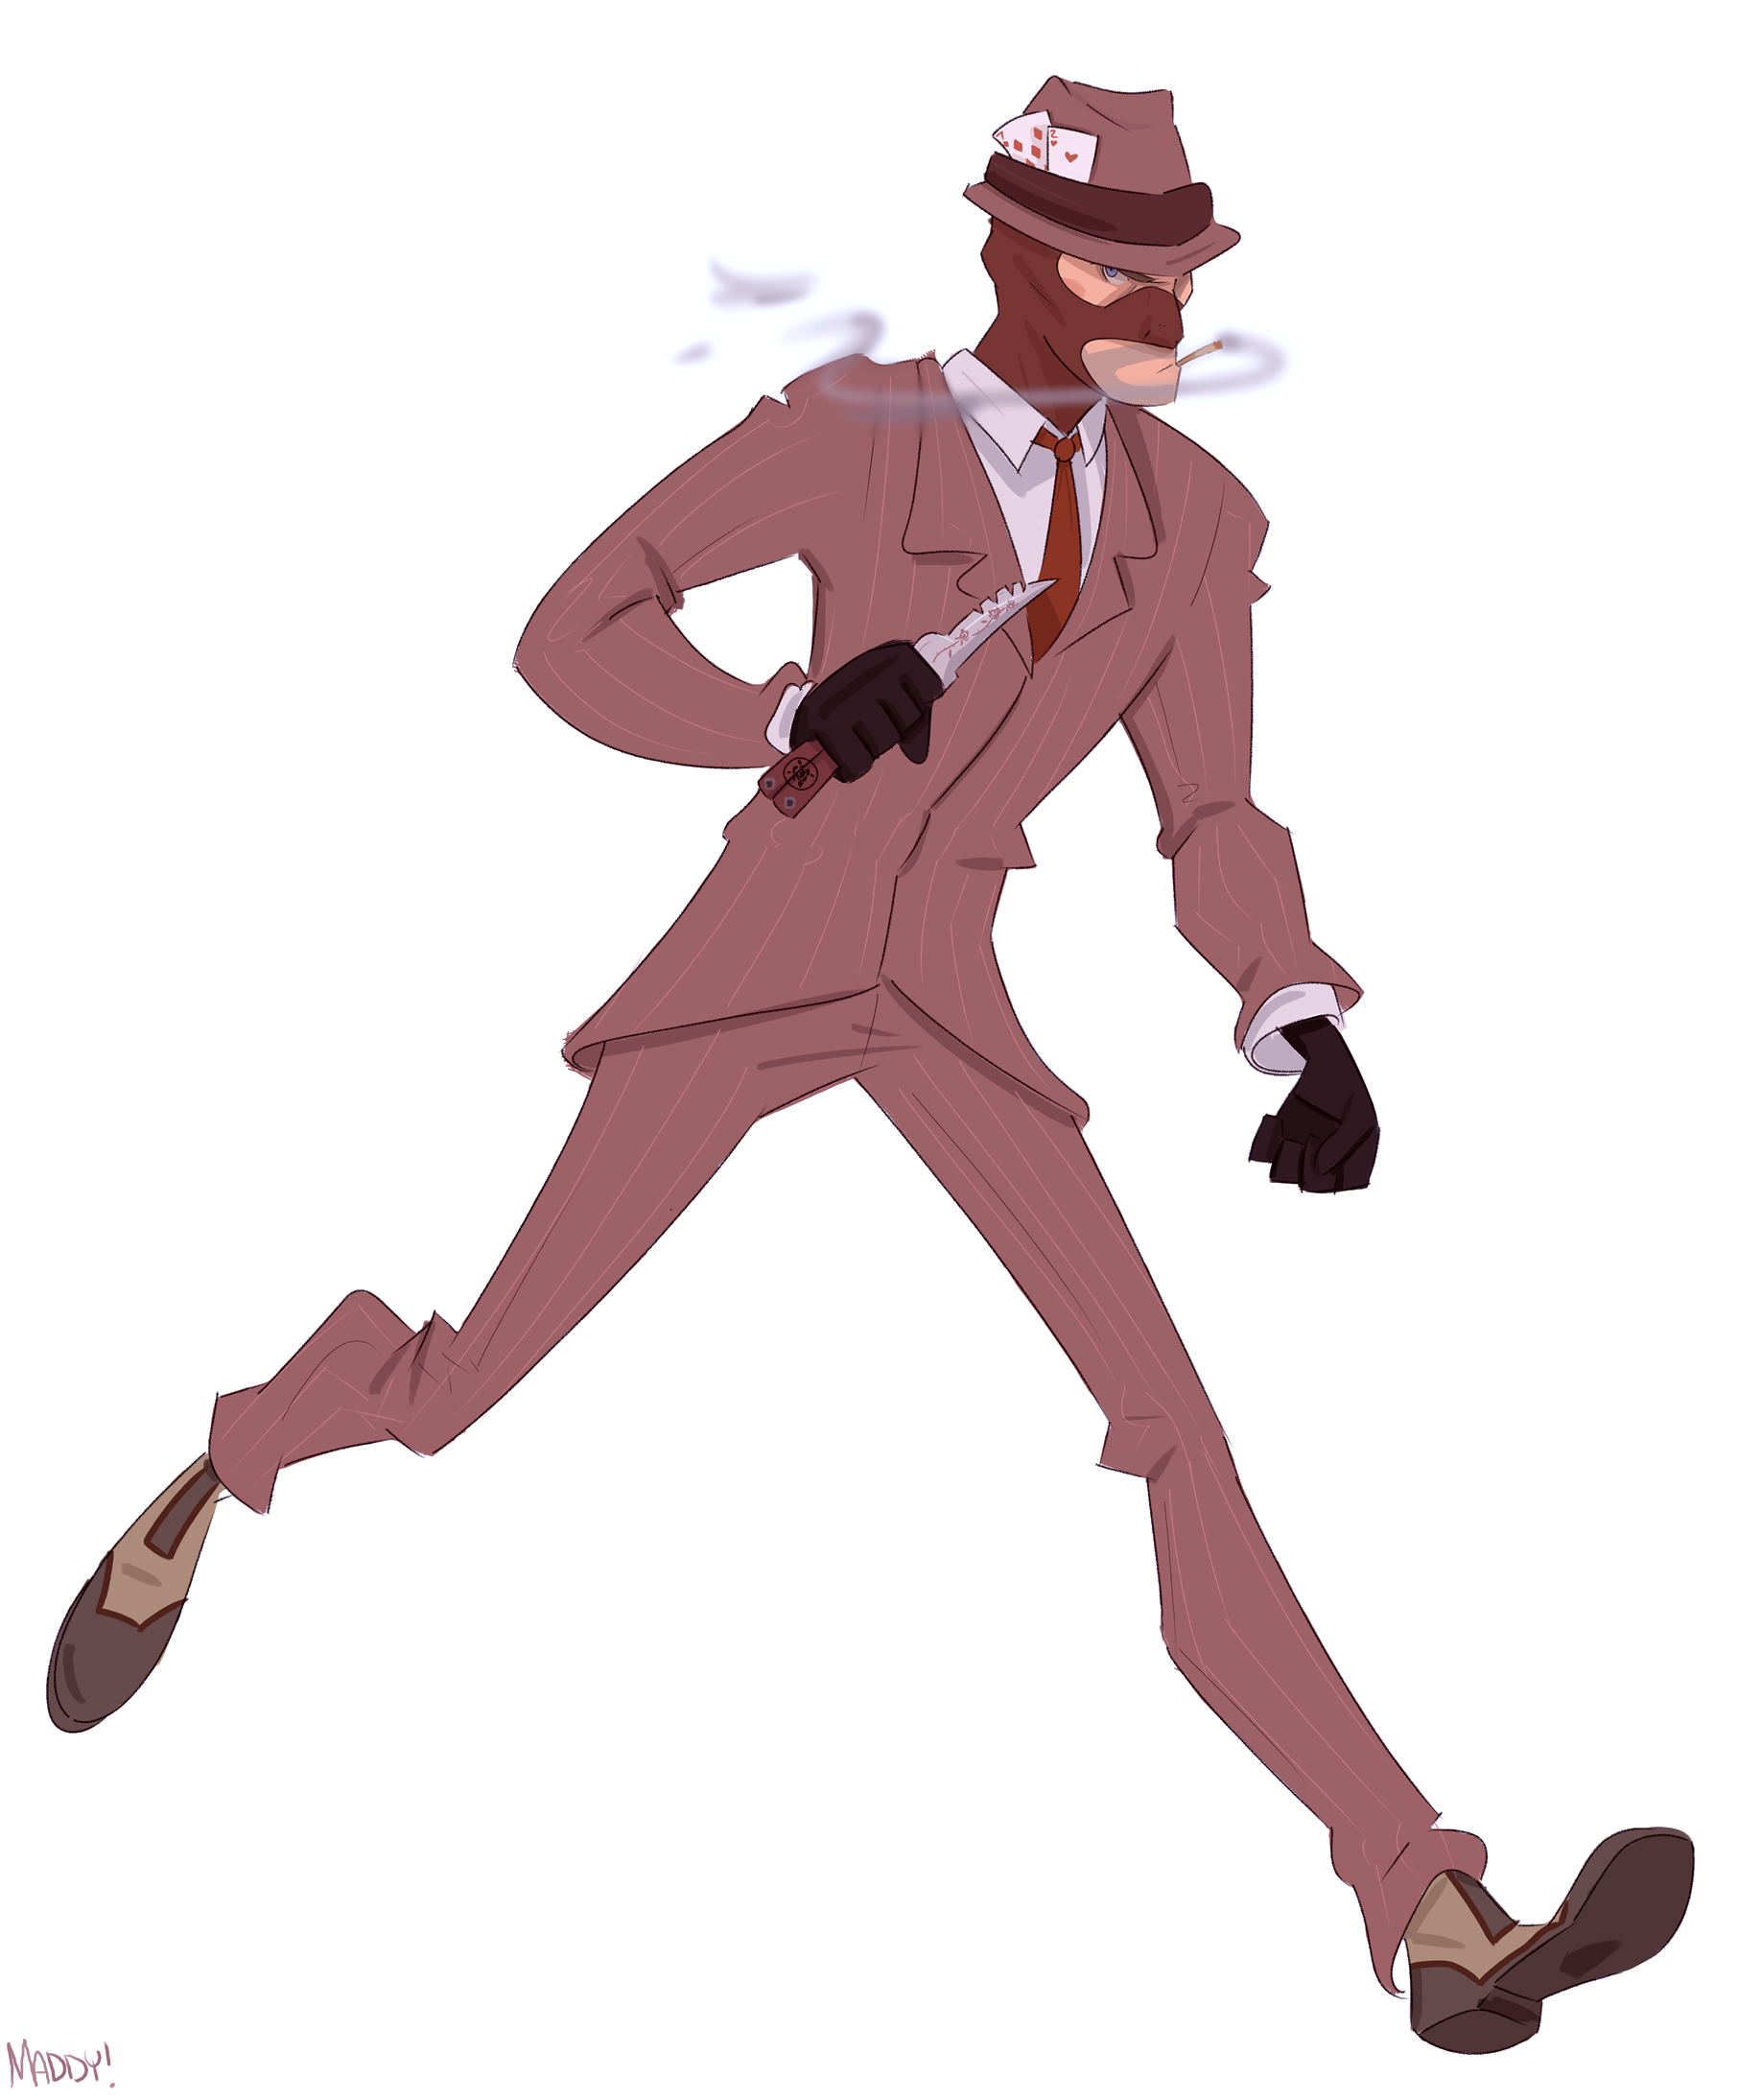 Spy Loadout That I Was Commissioned To Draw Games Teamfortress2 Steam Tf2 Steamnewrelease Gaming Valve Team Fortress 2 Team Fortress 3 Team Fortess 2